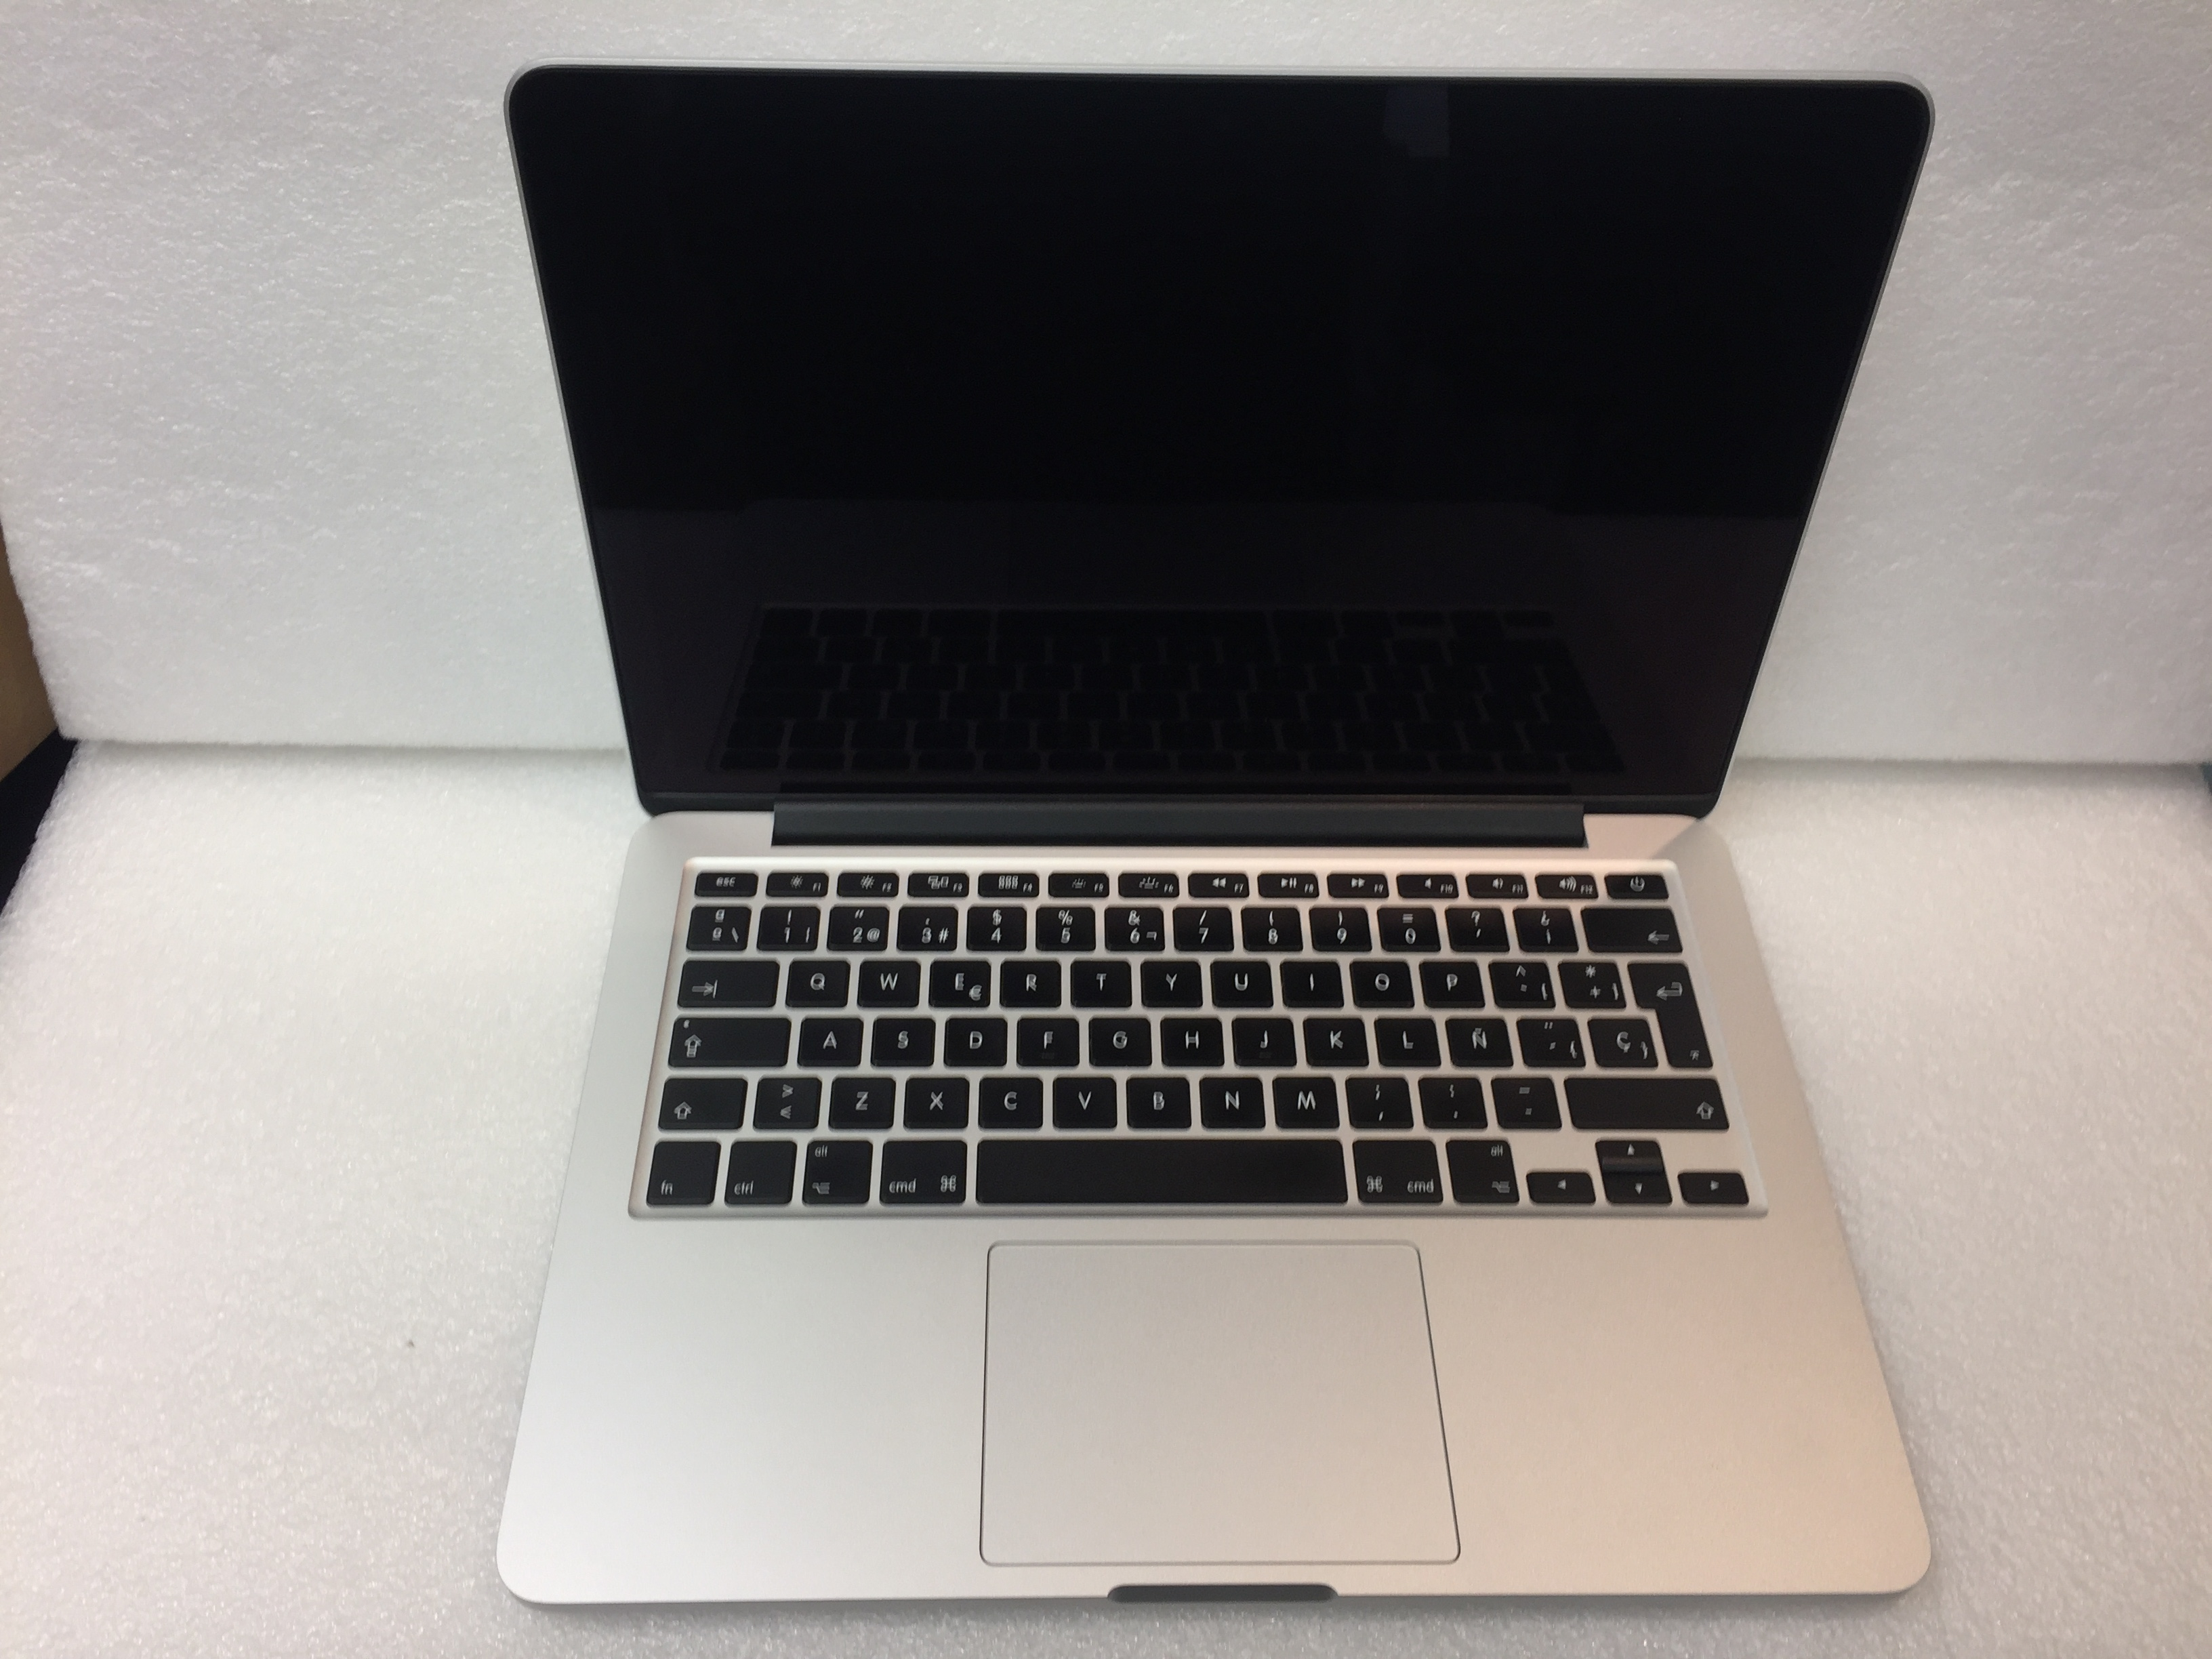 MacBook Pro 13-inch Retina, Intel Core i5 2,7 GHZ, 8 GB, 128 GB SSD, imagen 2